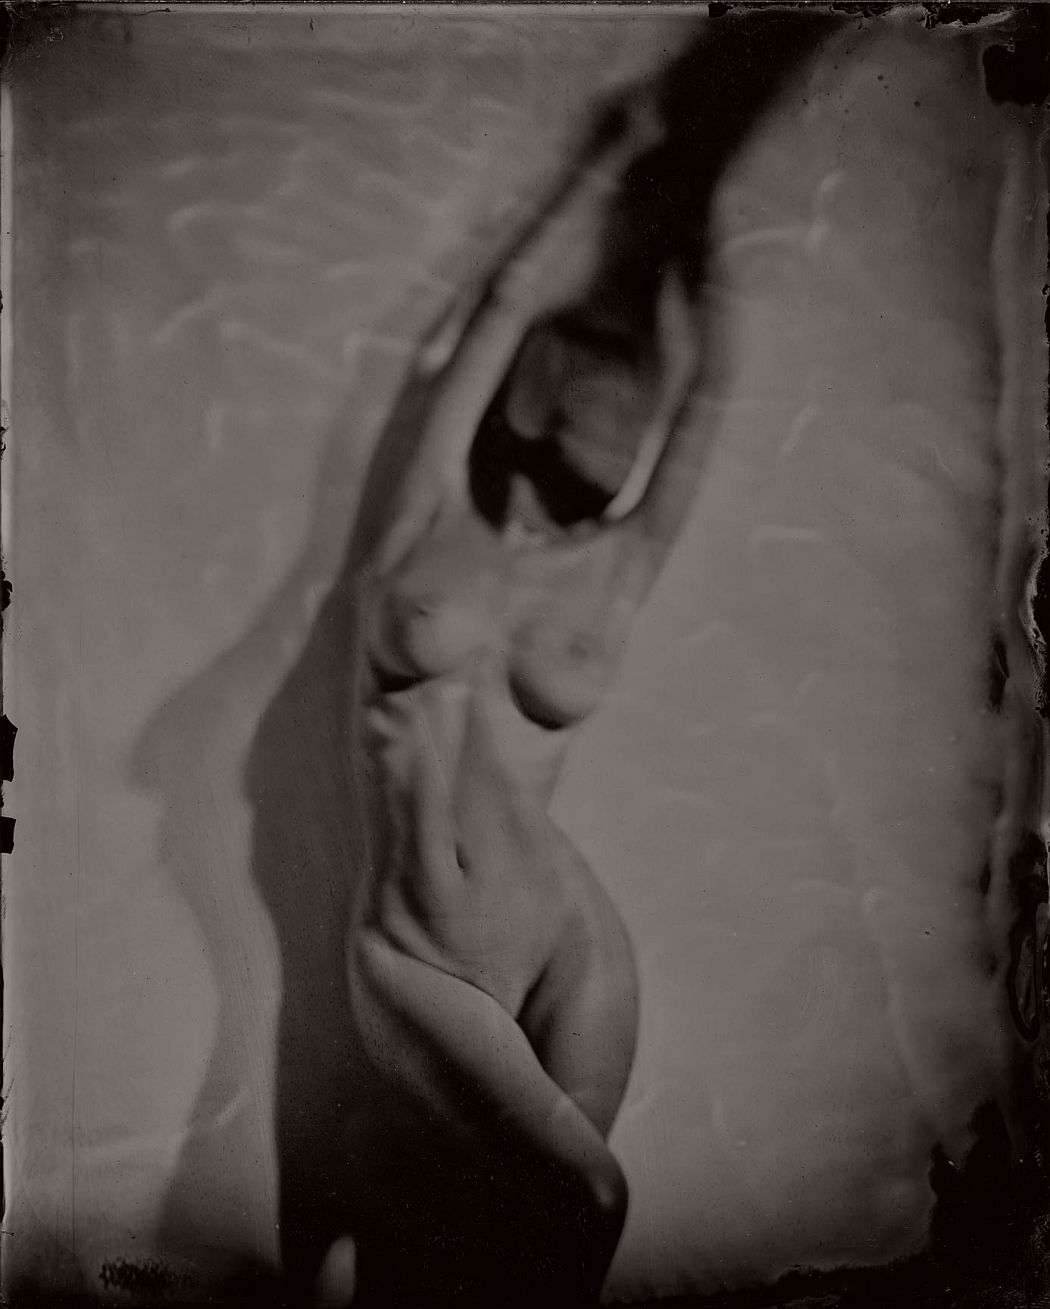 nude-ambrotypes-by-james-weber-01